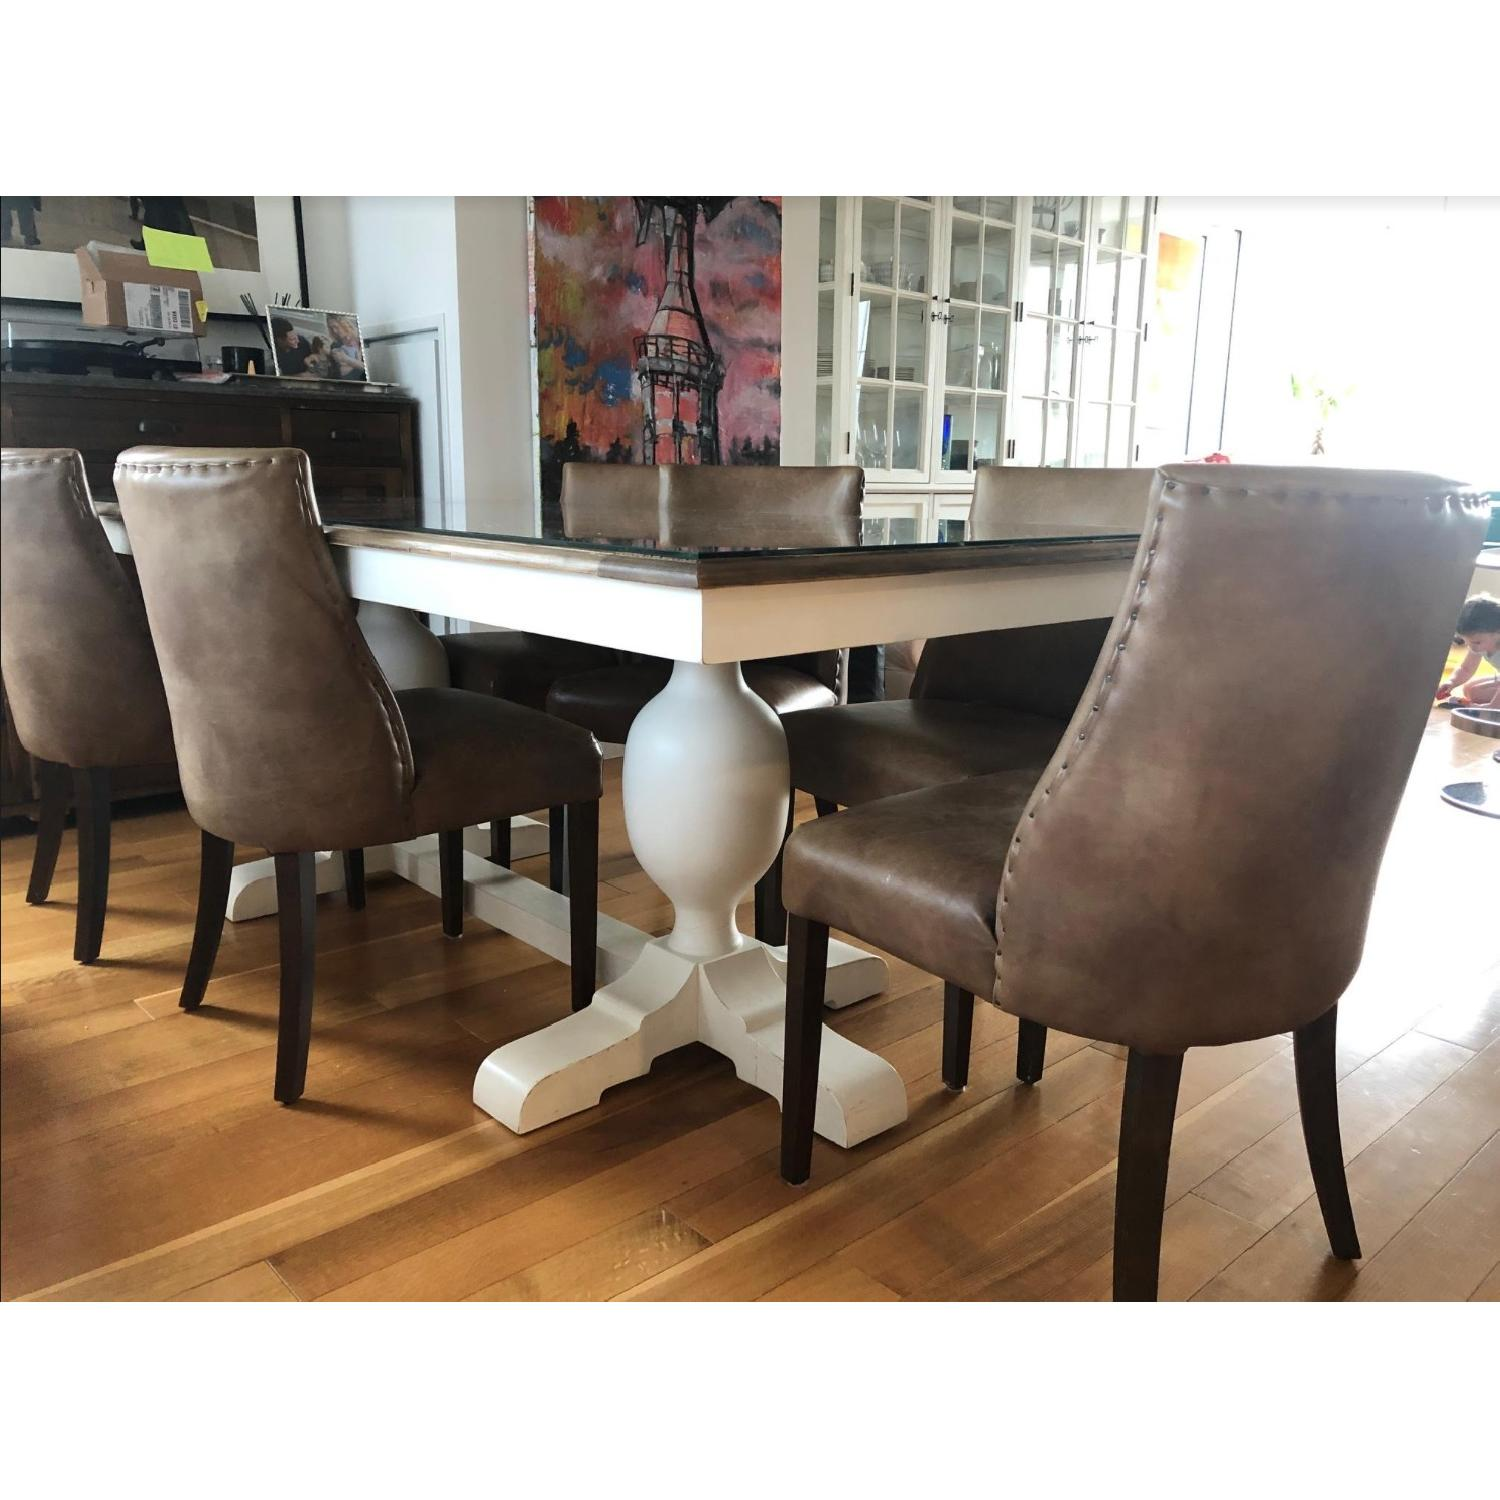 Restoration Hardware Barrel Back Nailhead Dining Chair - image-1